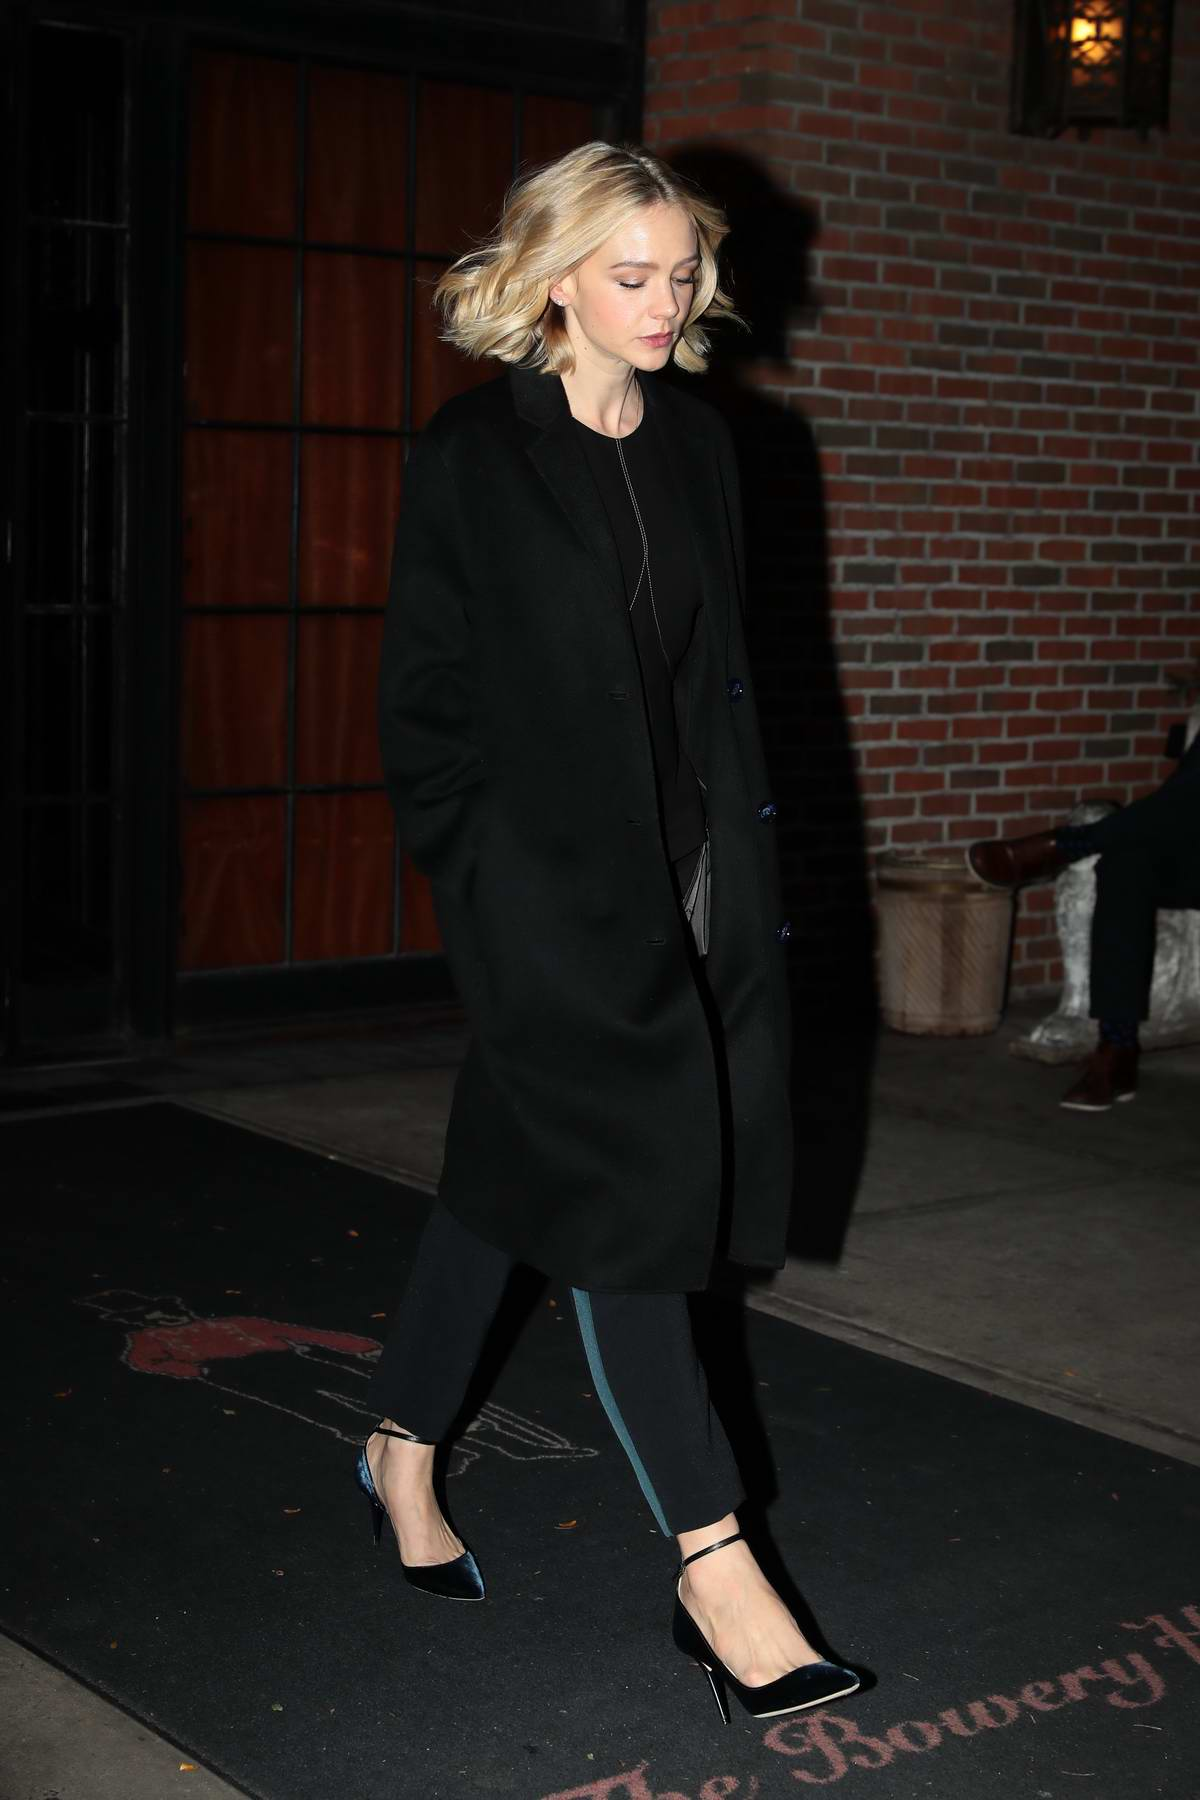 Carey Mulligan leaves The Bowery Hotel in New York City